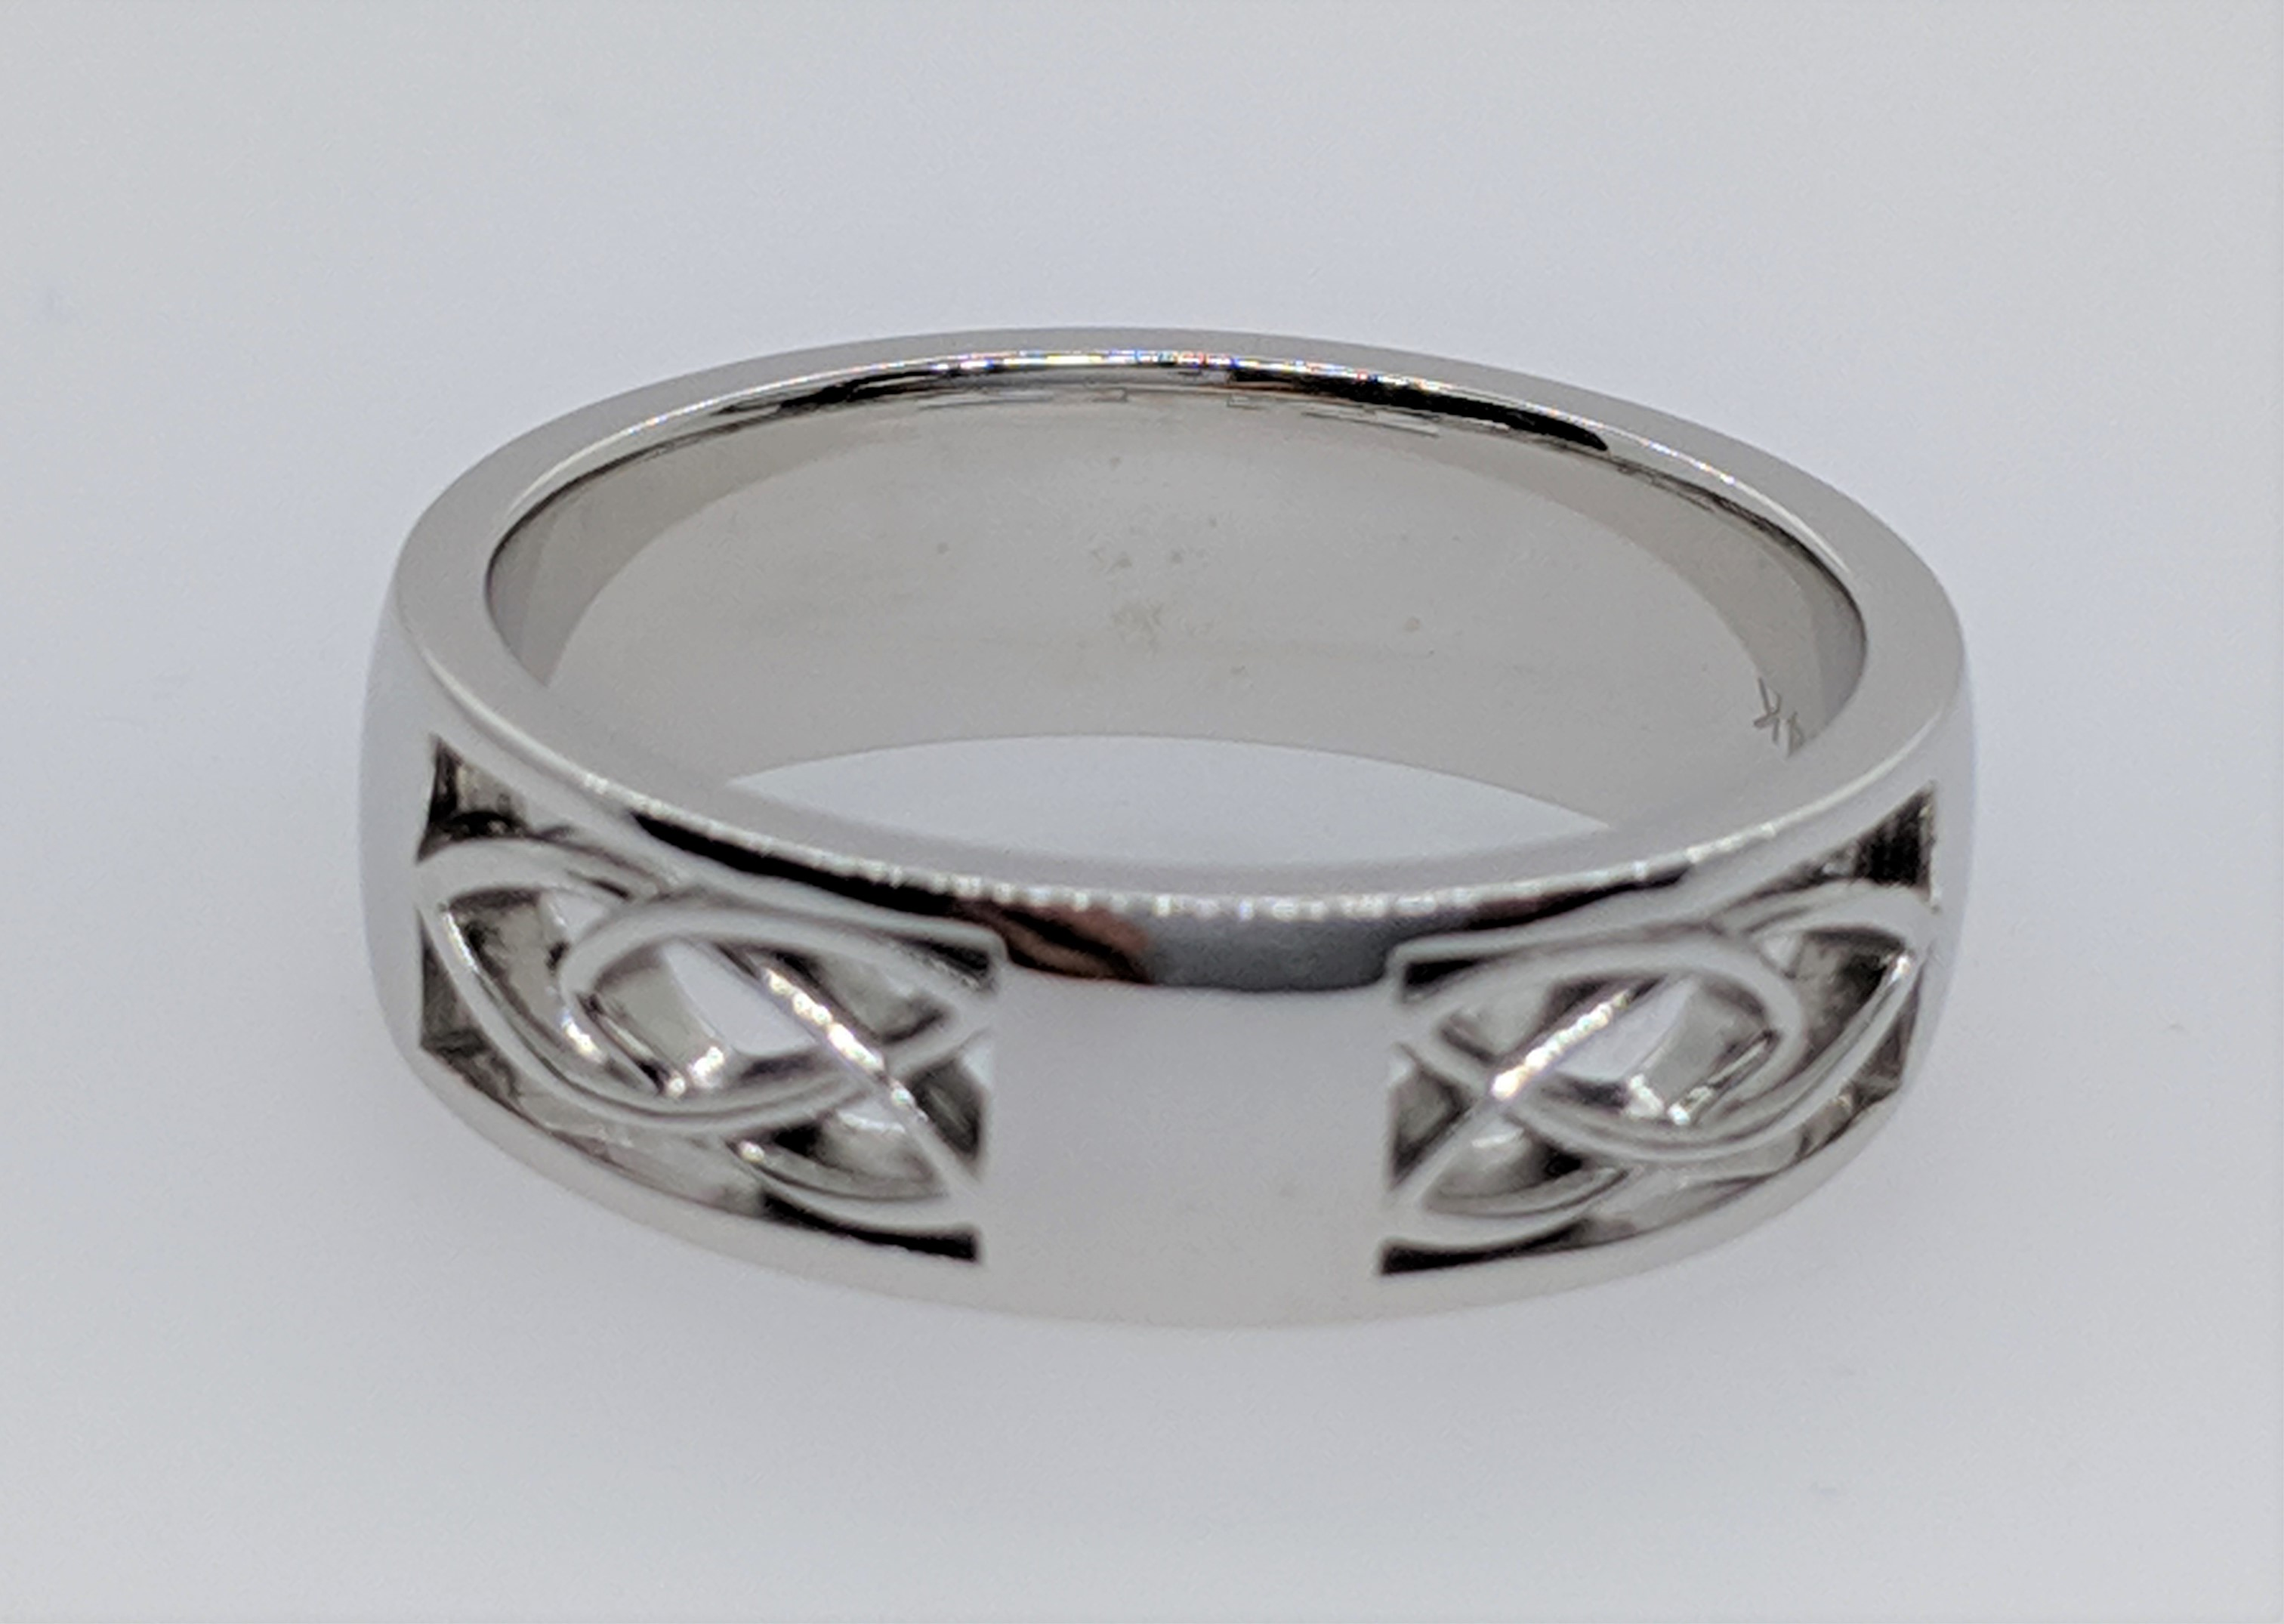 Celtic Wedding Band 14k white gold, 5mm wide